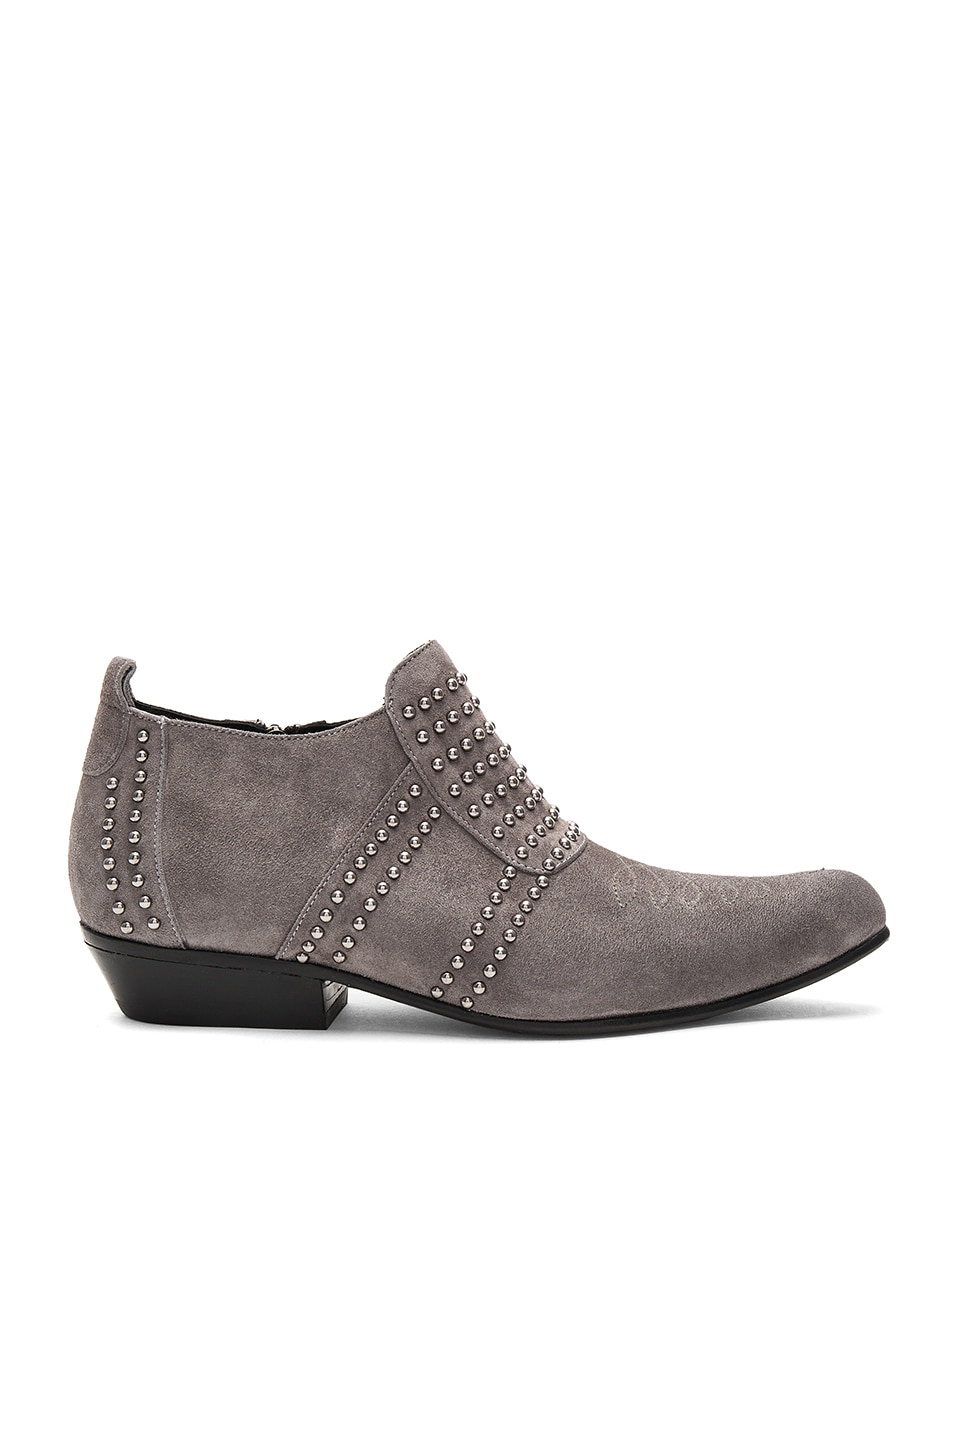 ANINE BING Low Charlie Bootie in Grey